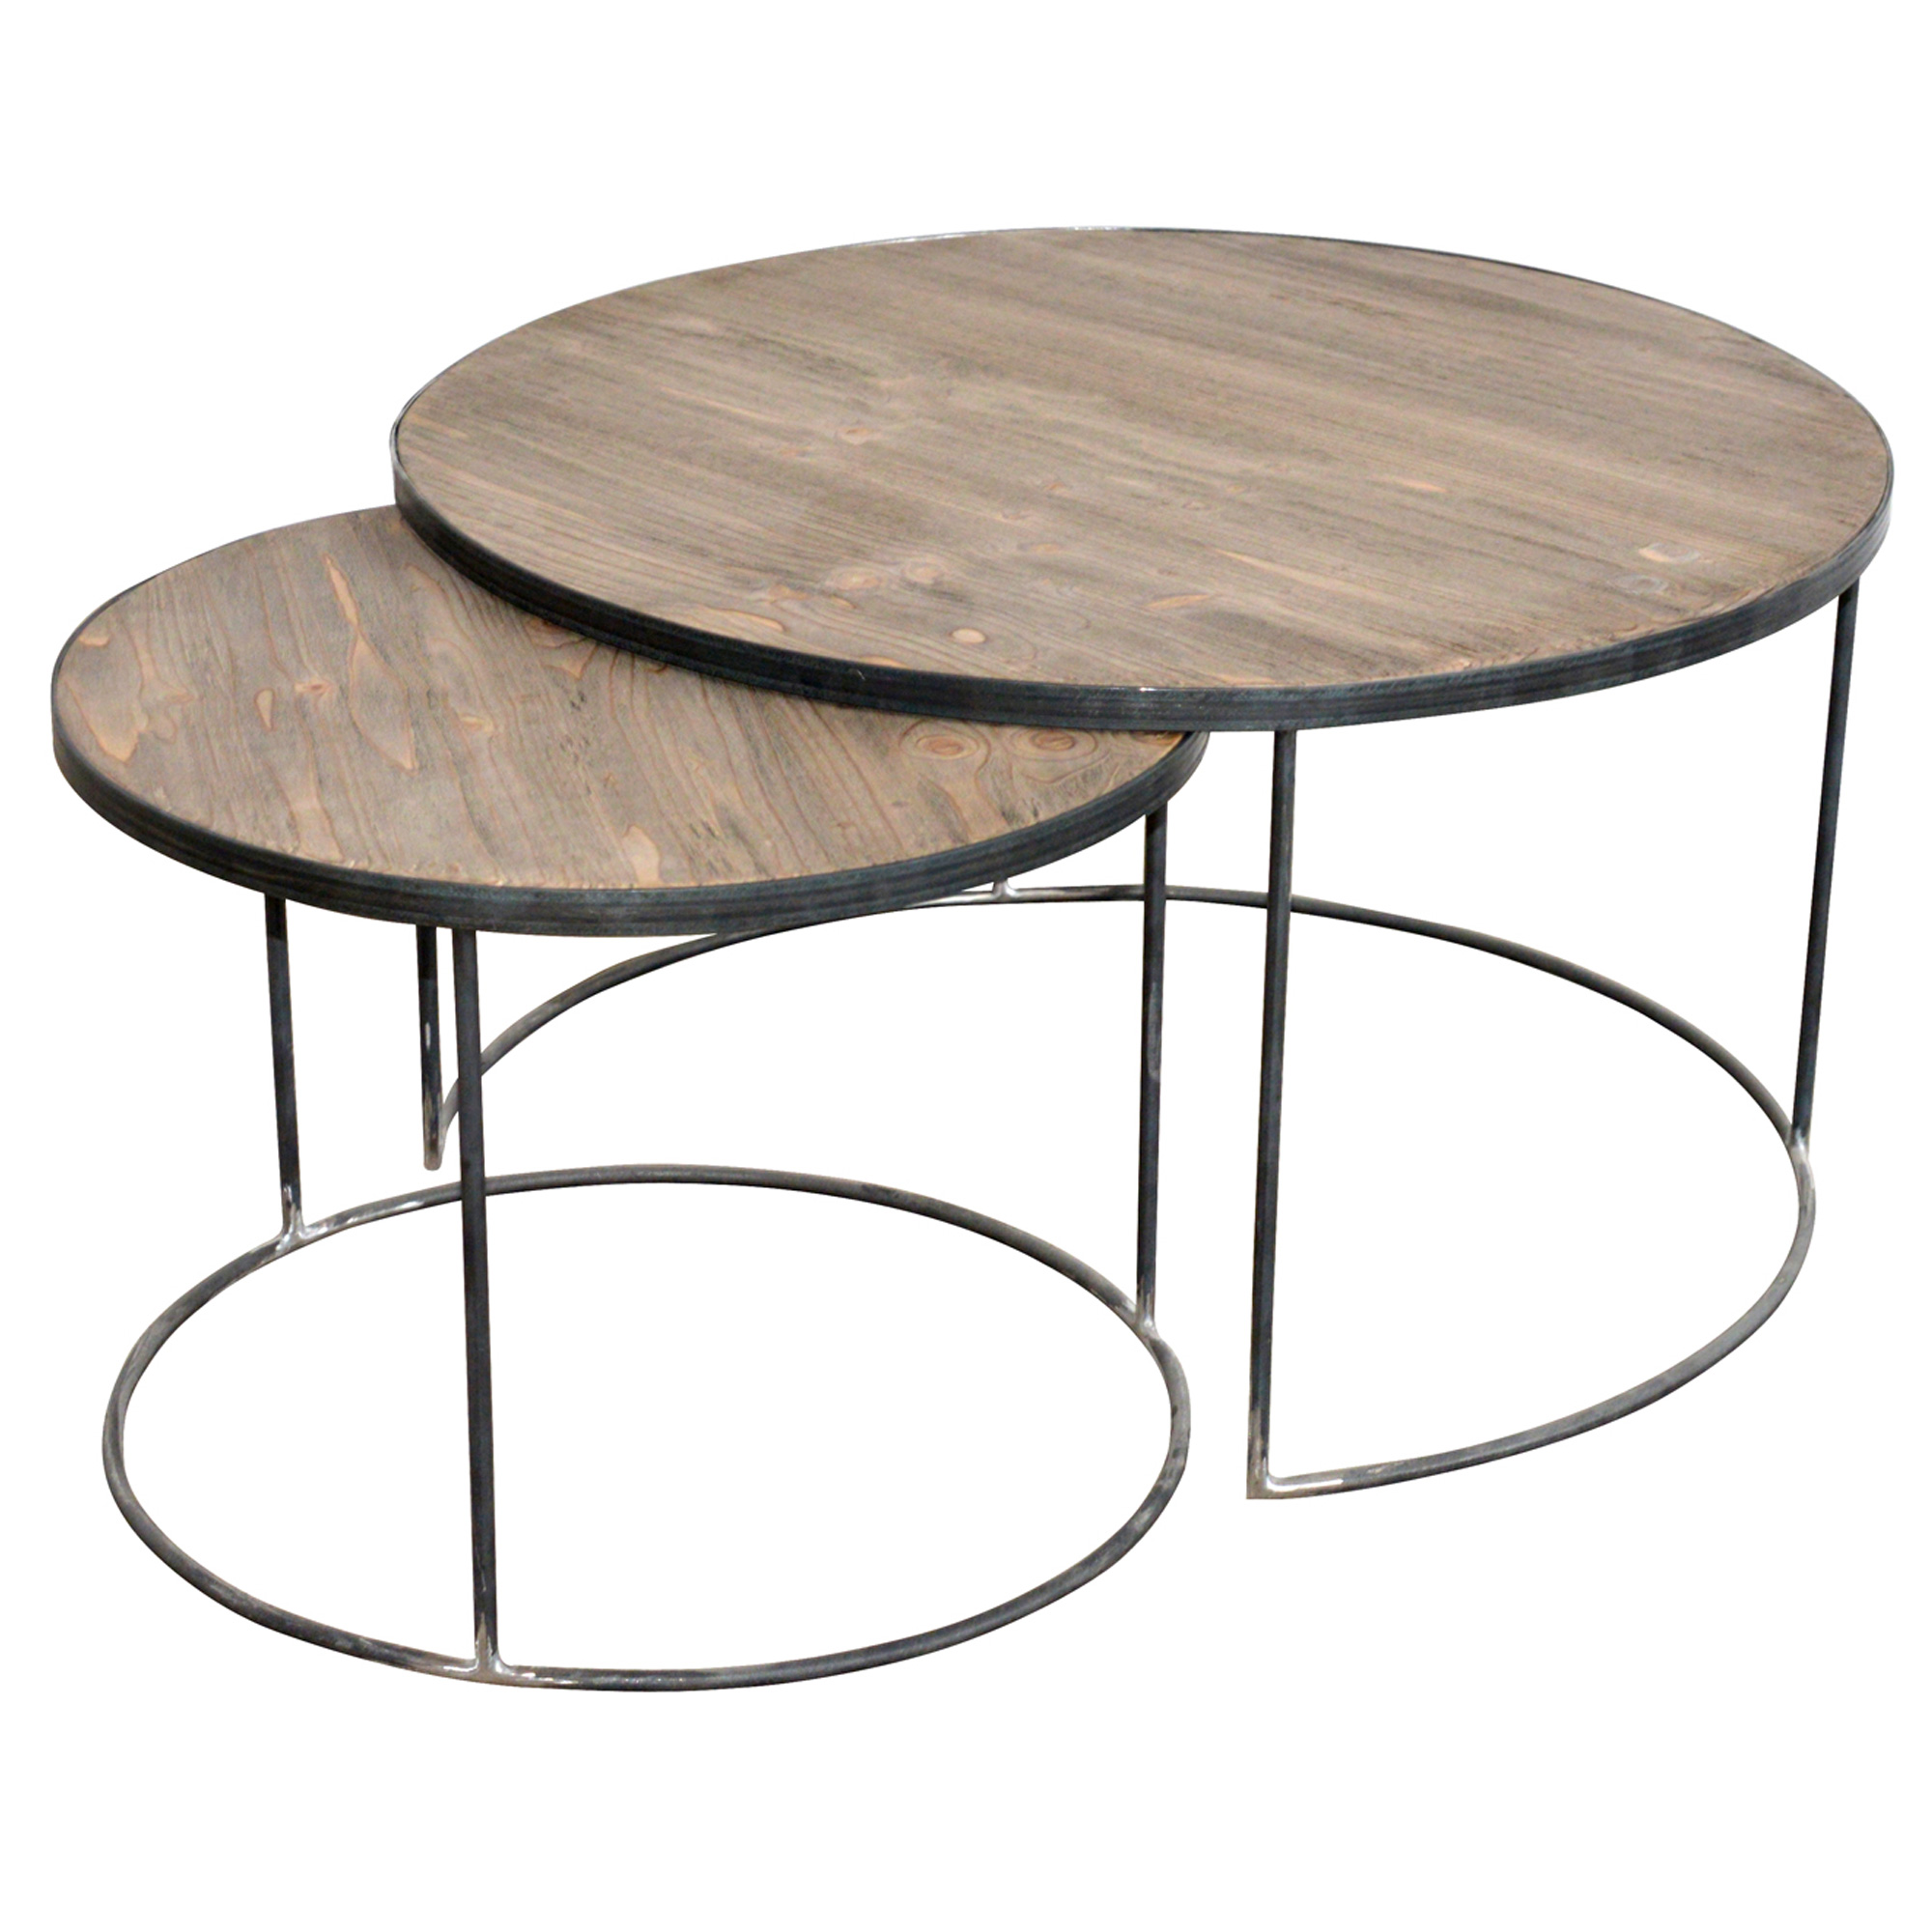 French set of two round coffee tables Furniture coffee tables